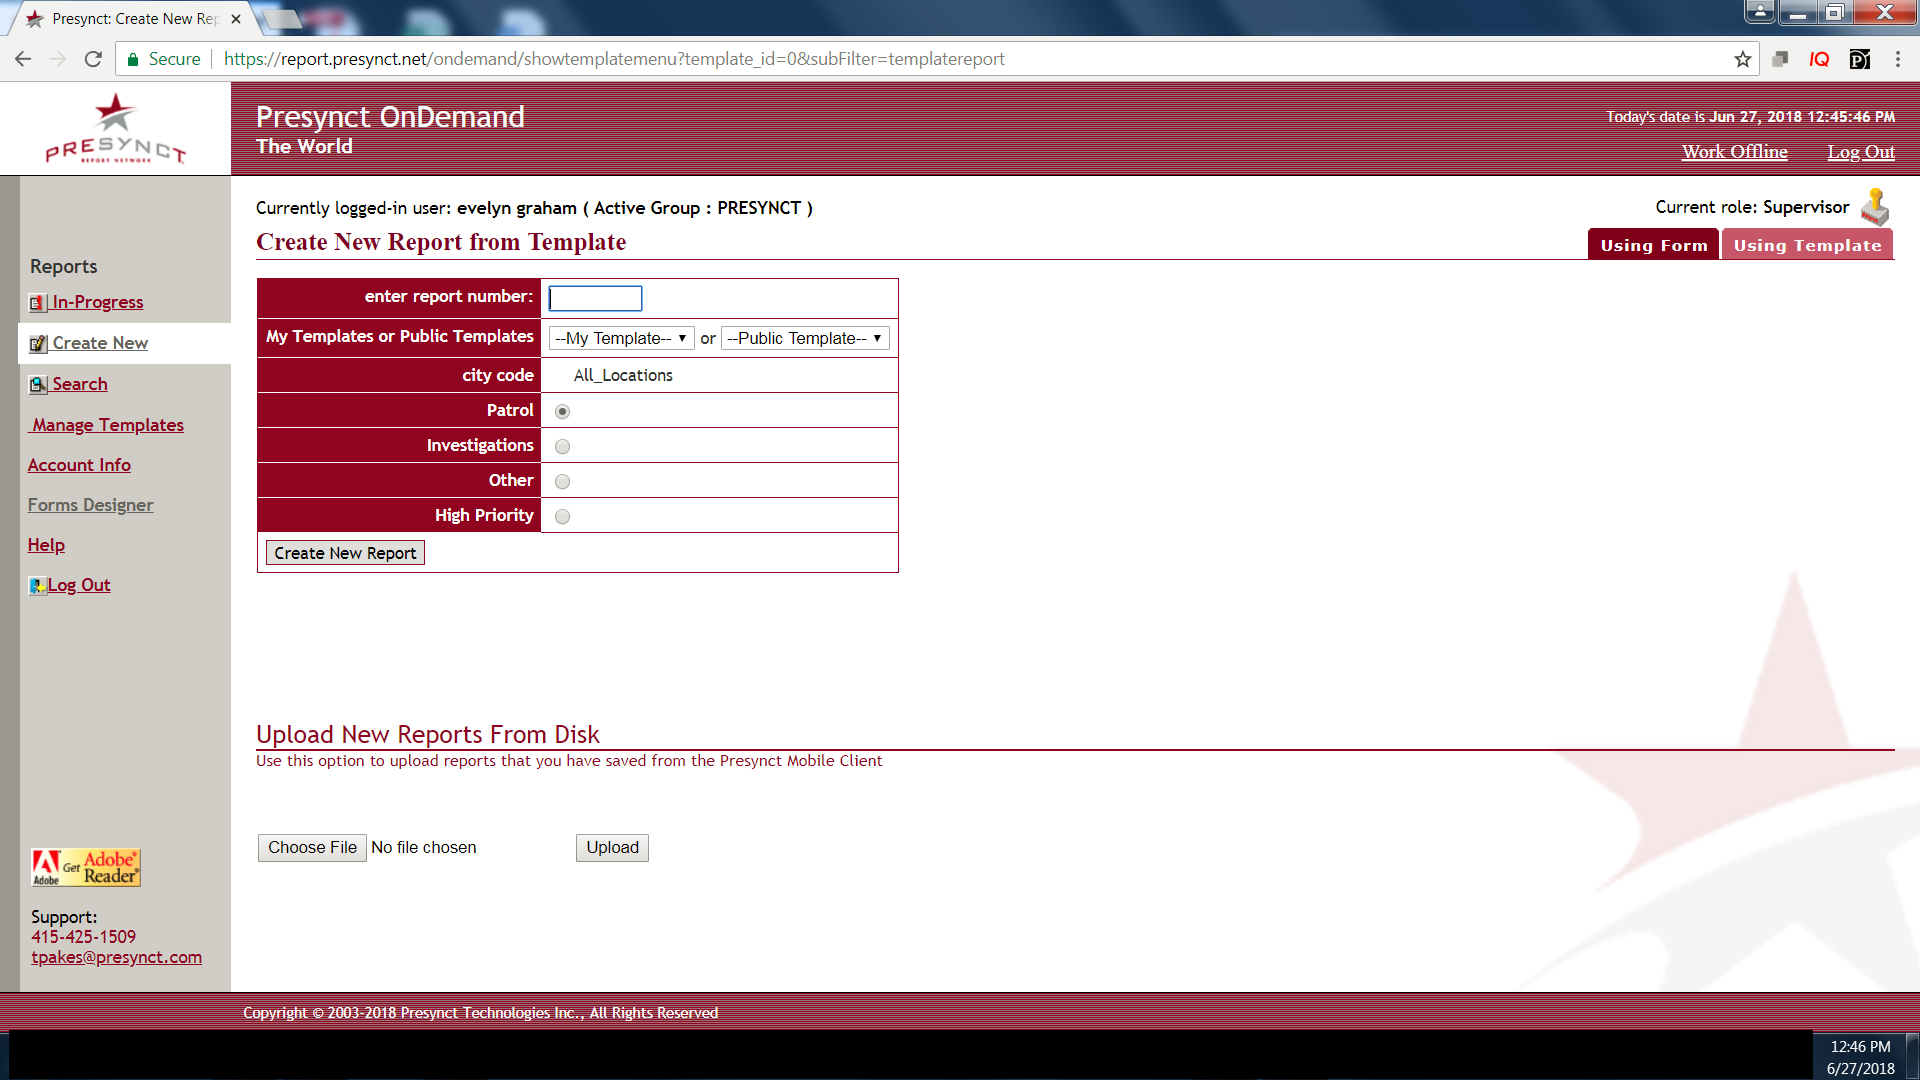 Presynct_OnDemand Software - Create report from template